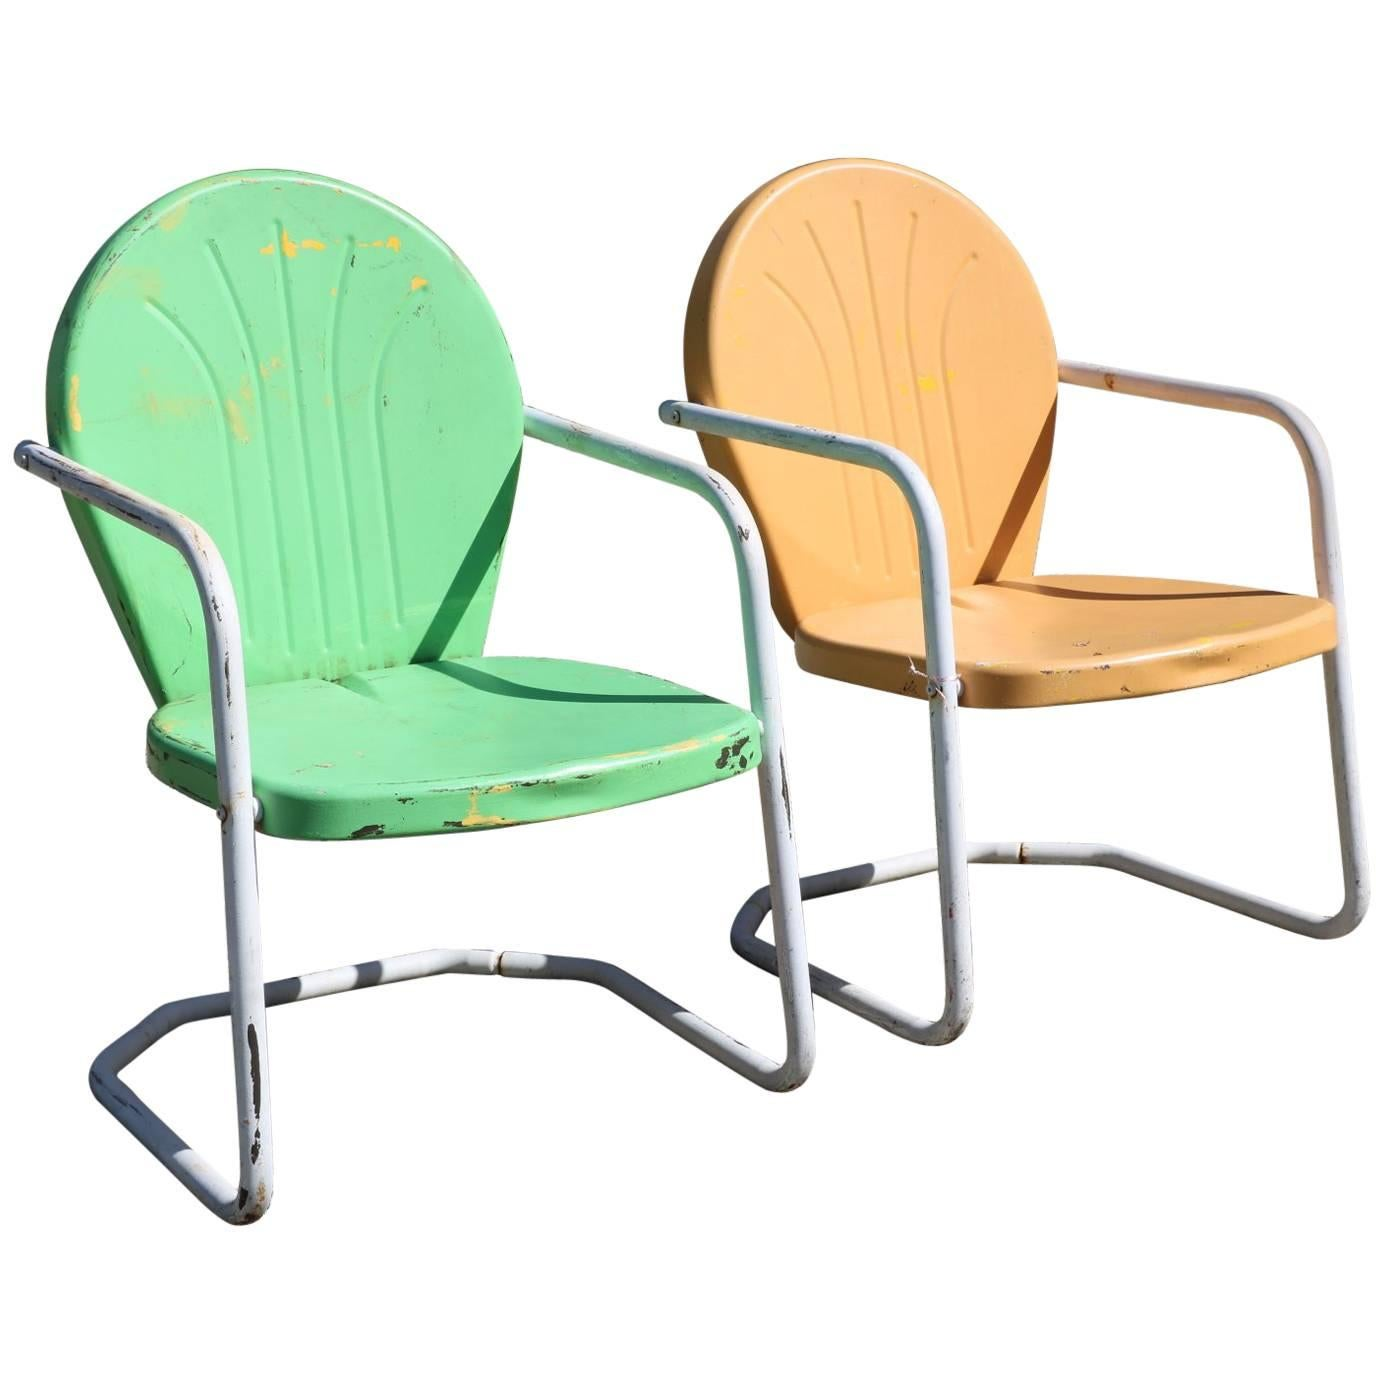 Lime Green Chairs Summertime Tangerine And Lime Green Retro Rockers Vintage 1950s Outdoor Chairs